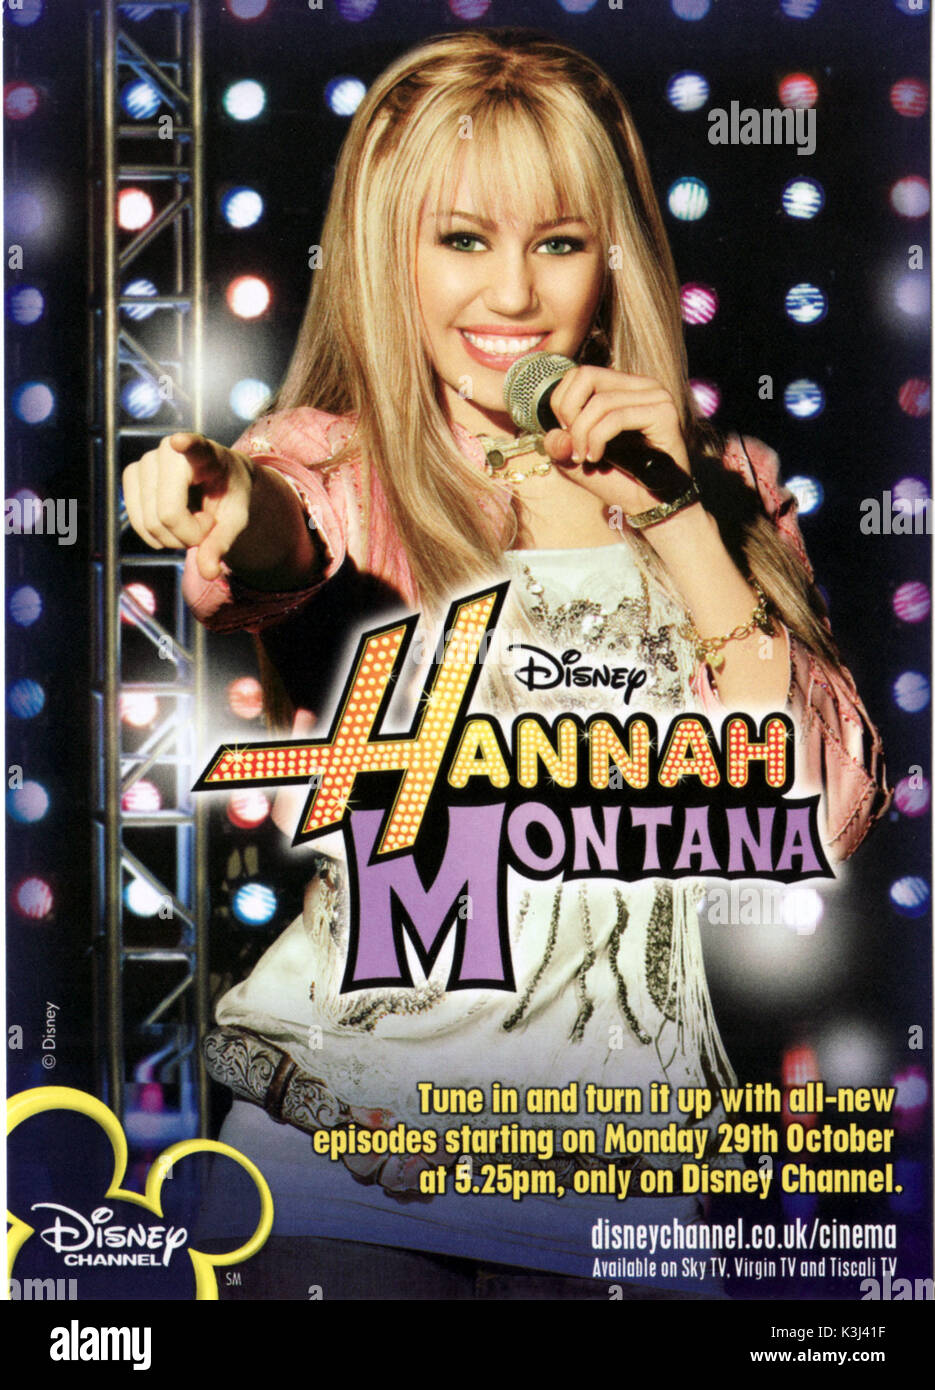 Hannah Montana Miley Cyrus Stock Photo Alamy